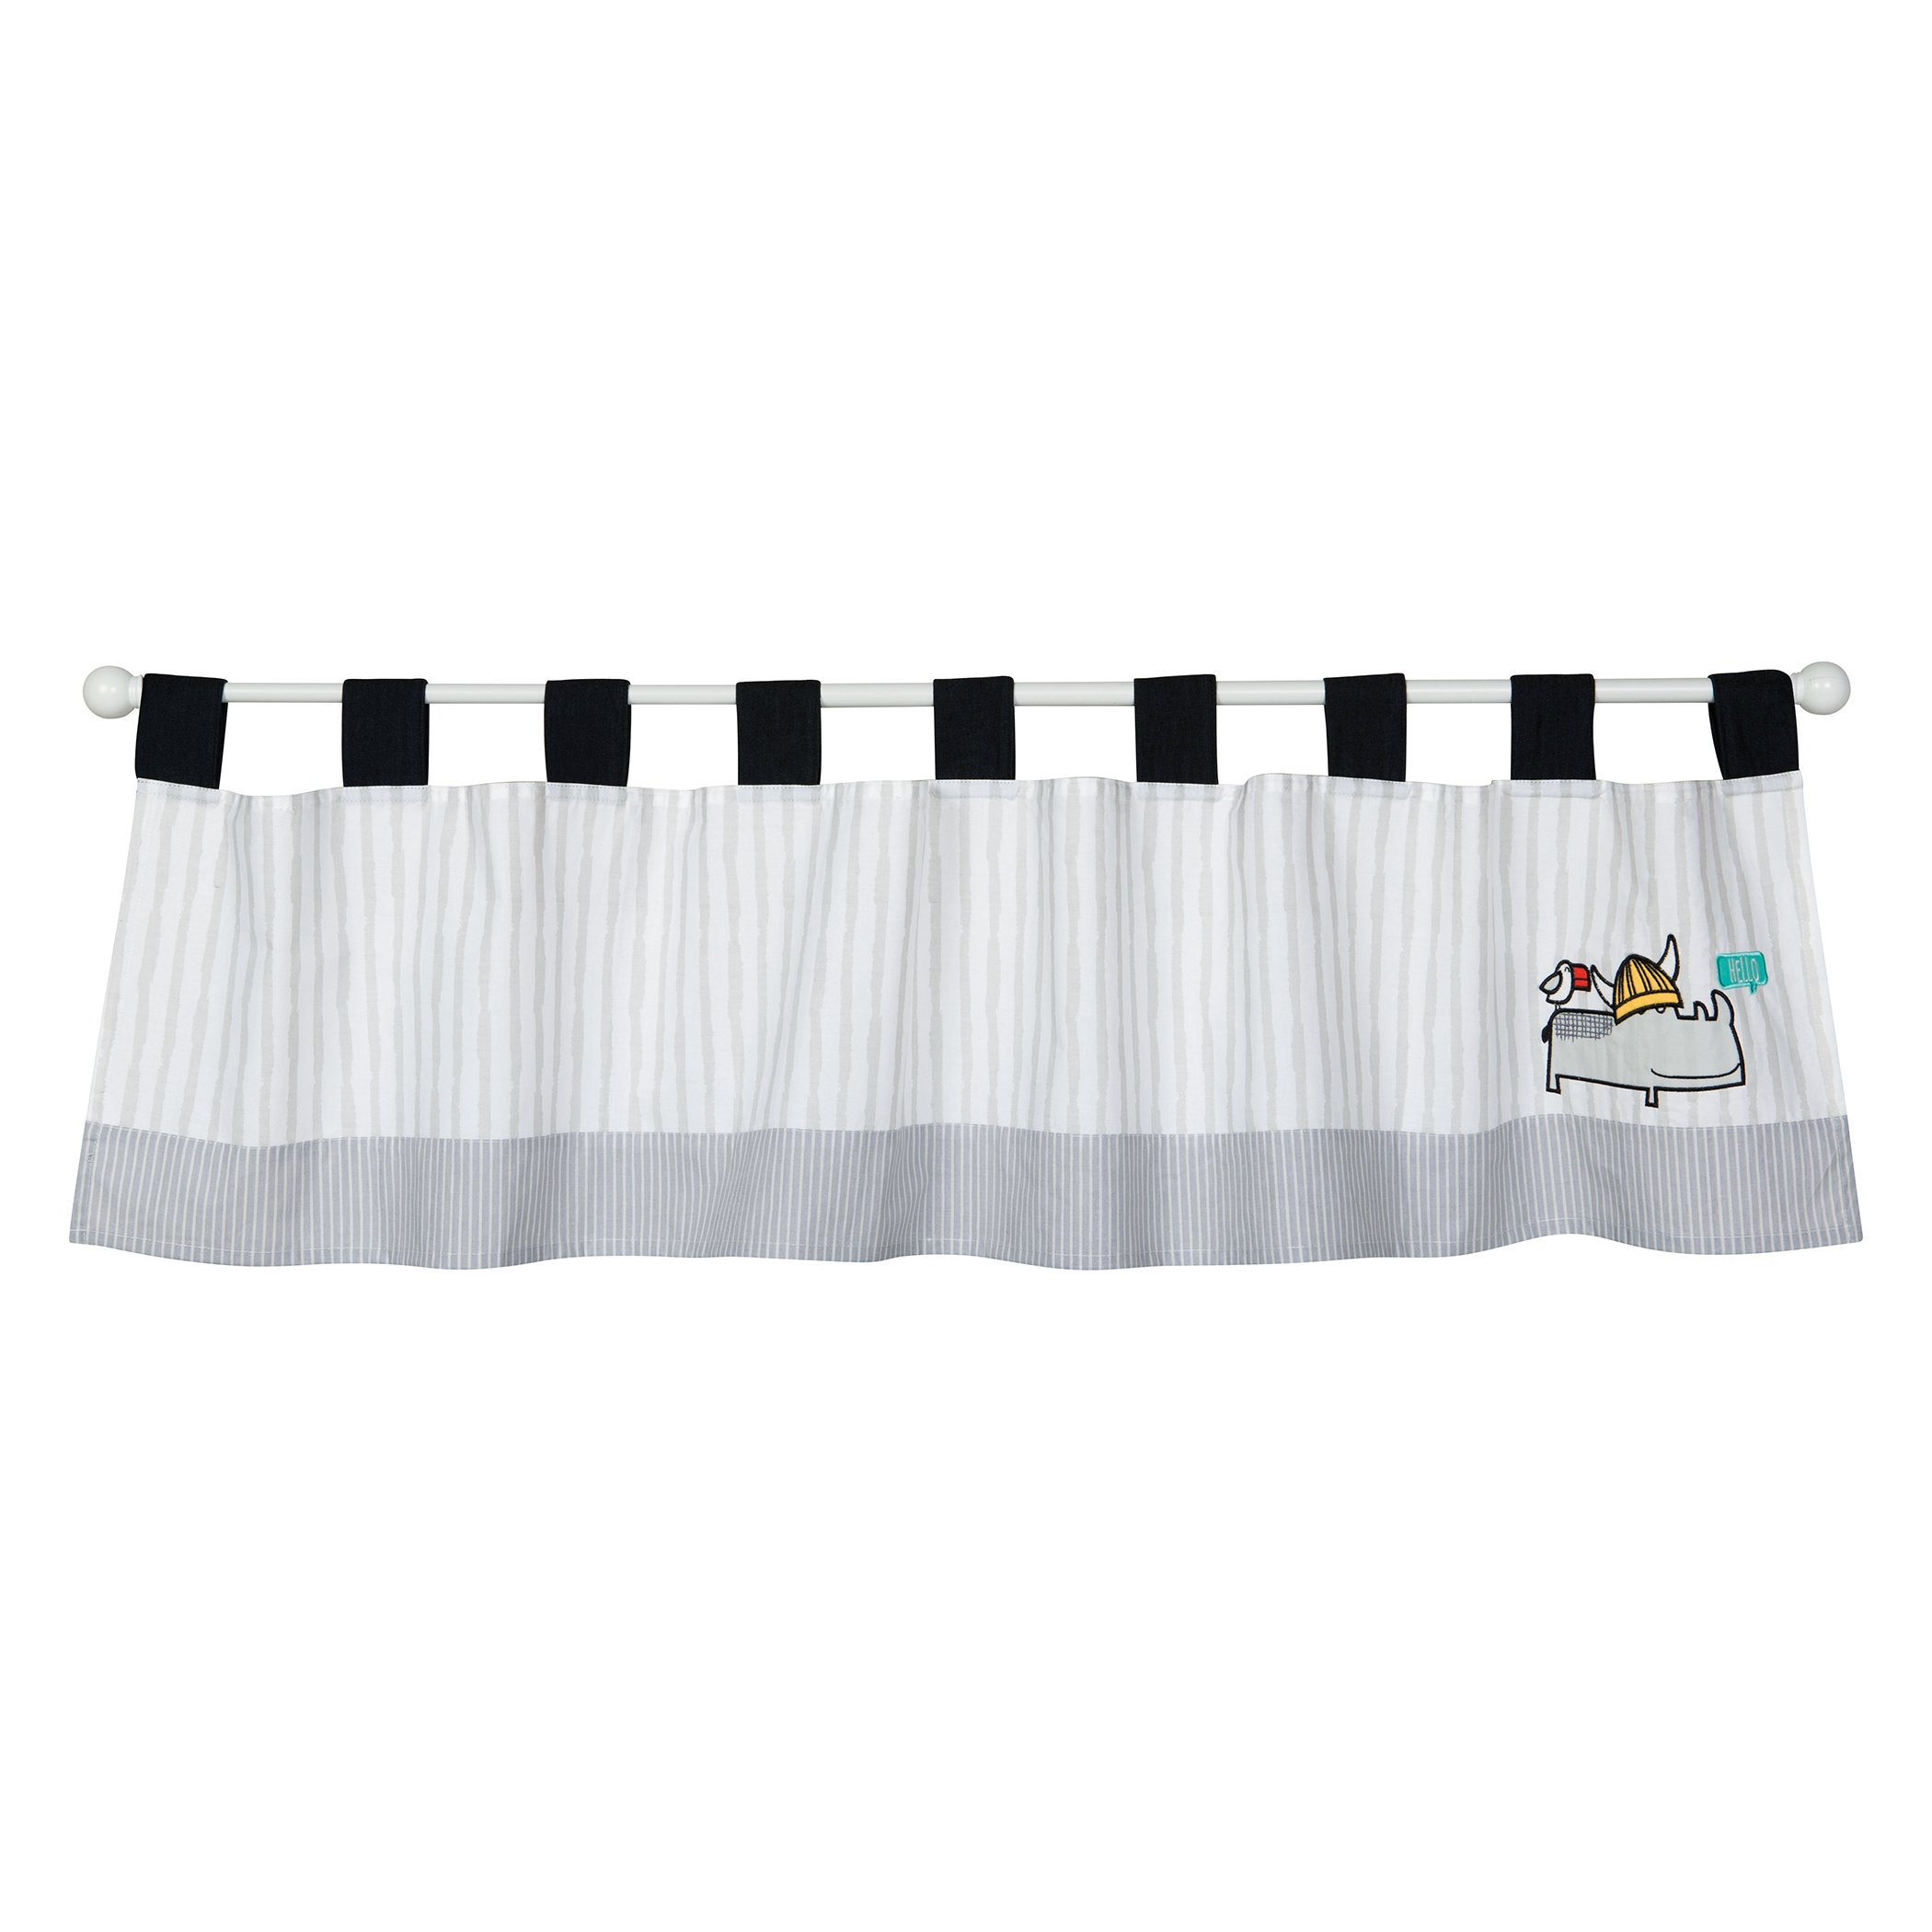 Trend Lab Hello Window Valance, Gray and White